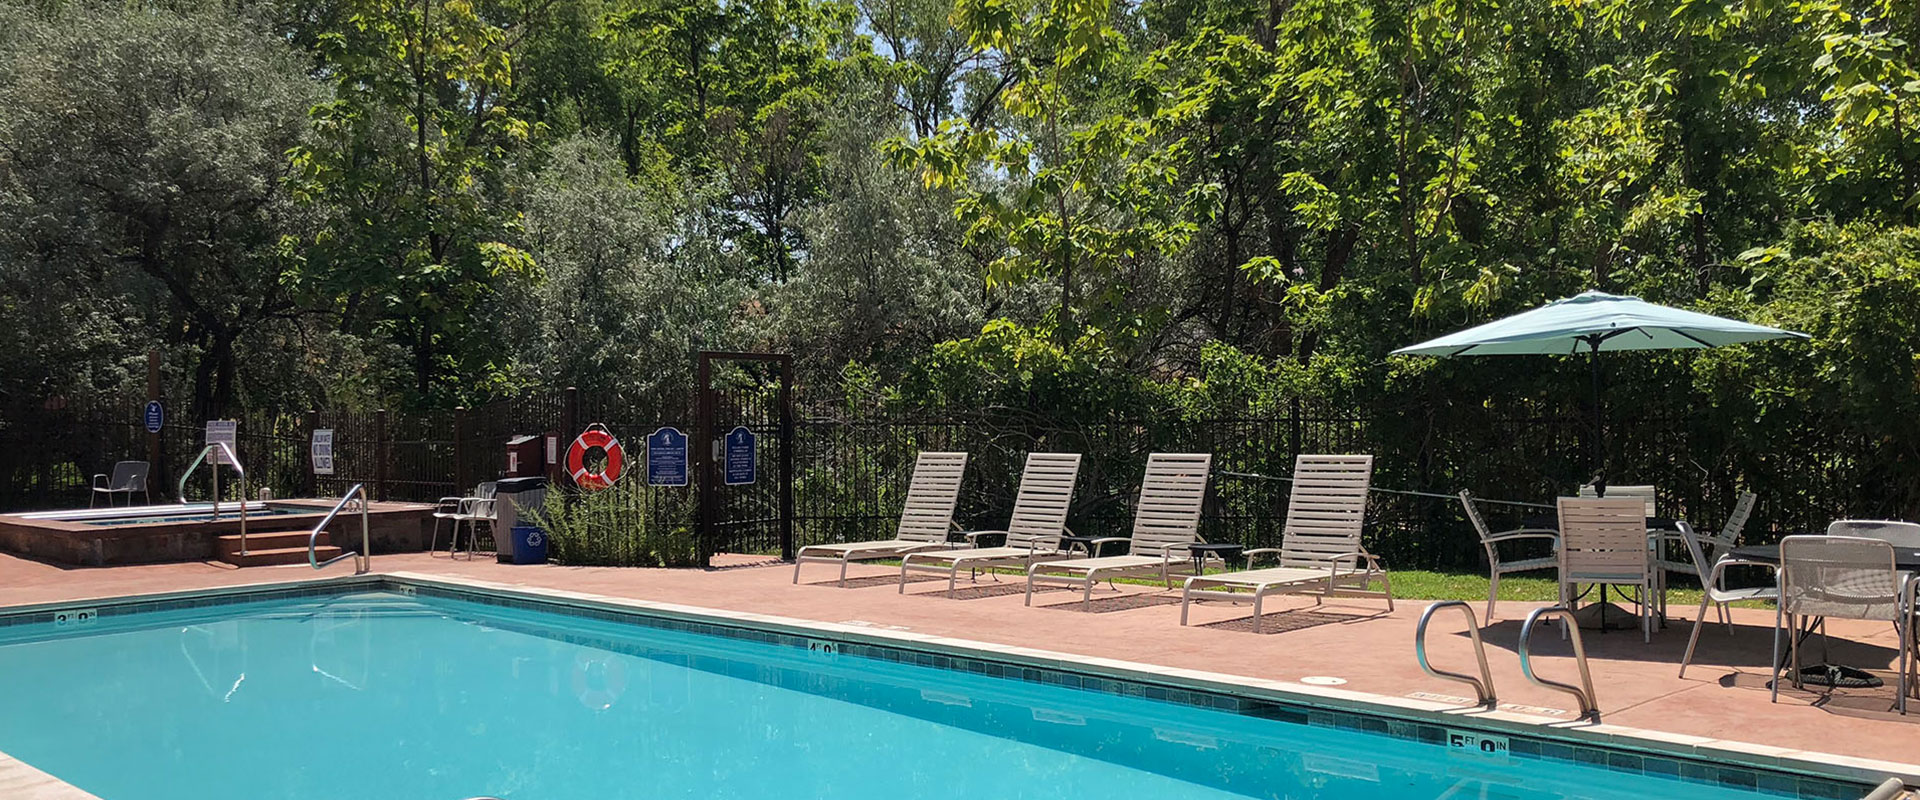 A blonde female child in a bathing suit twirling a hula hoop, plays in the man-made stream against the natural backdrop of green grass and trees at Moab Springs Ranch.